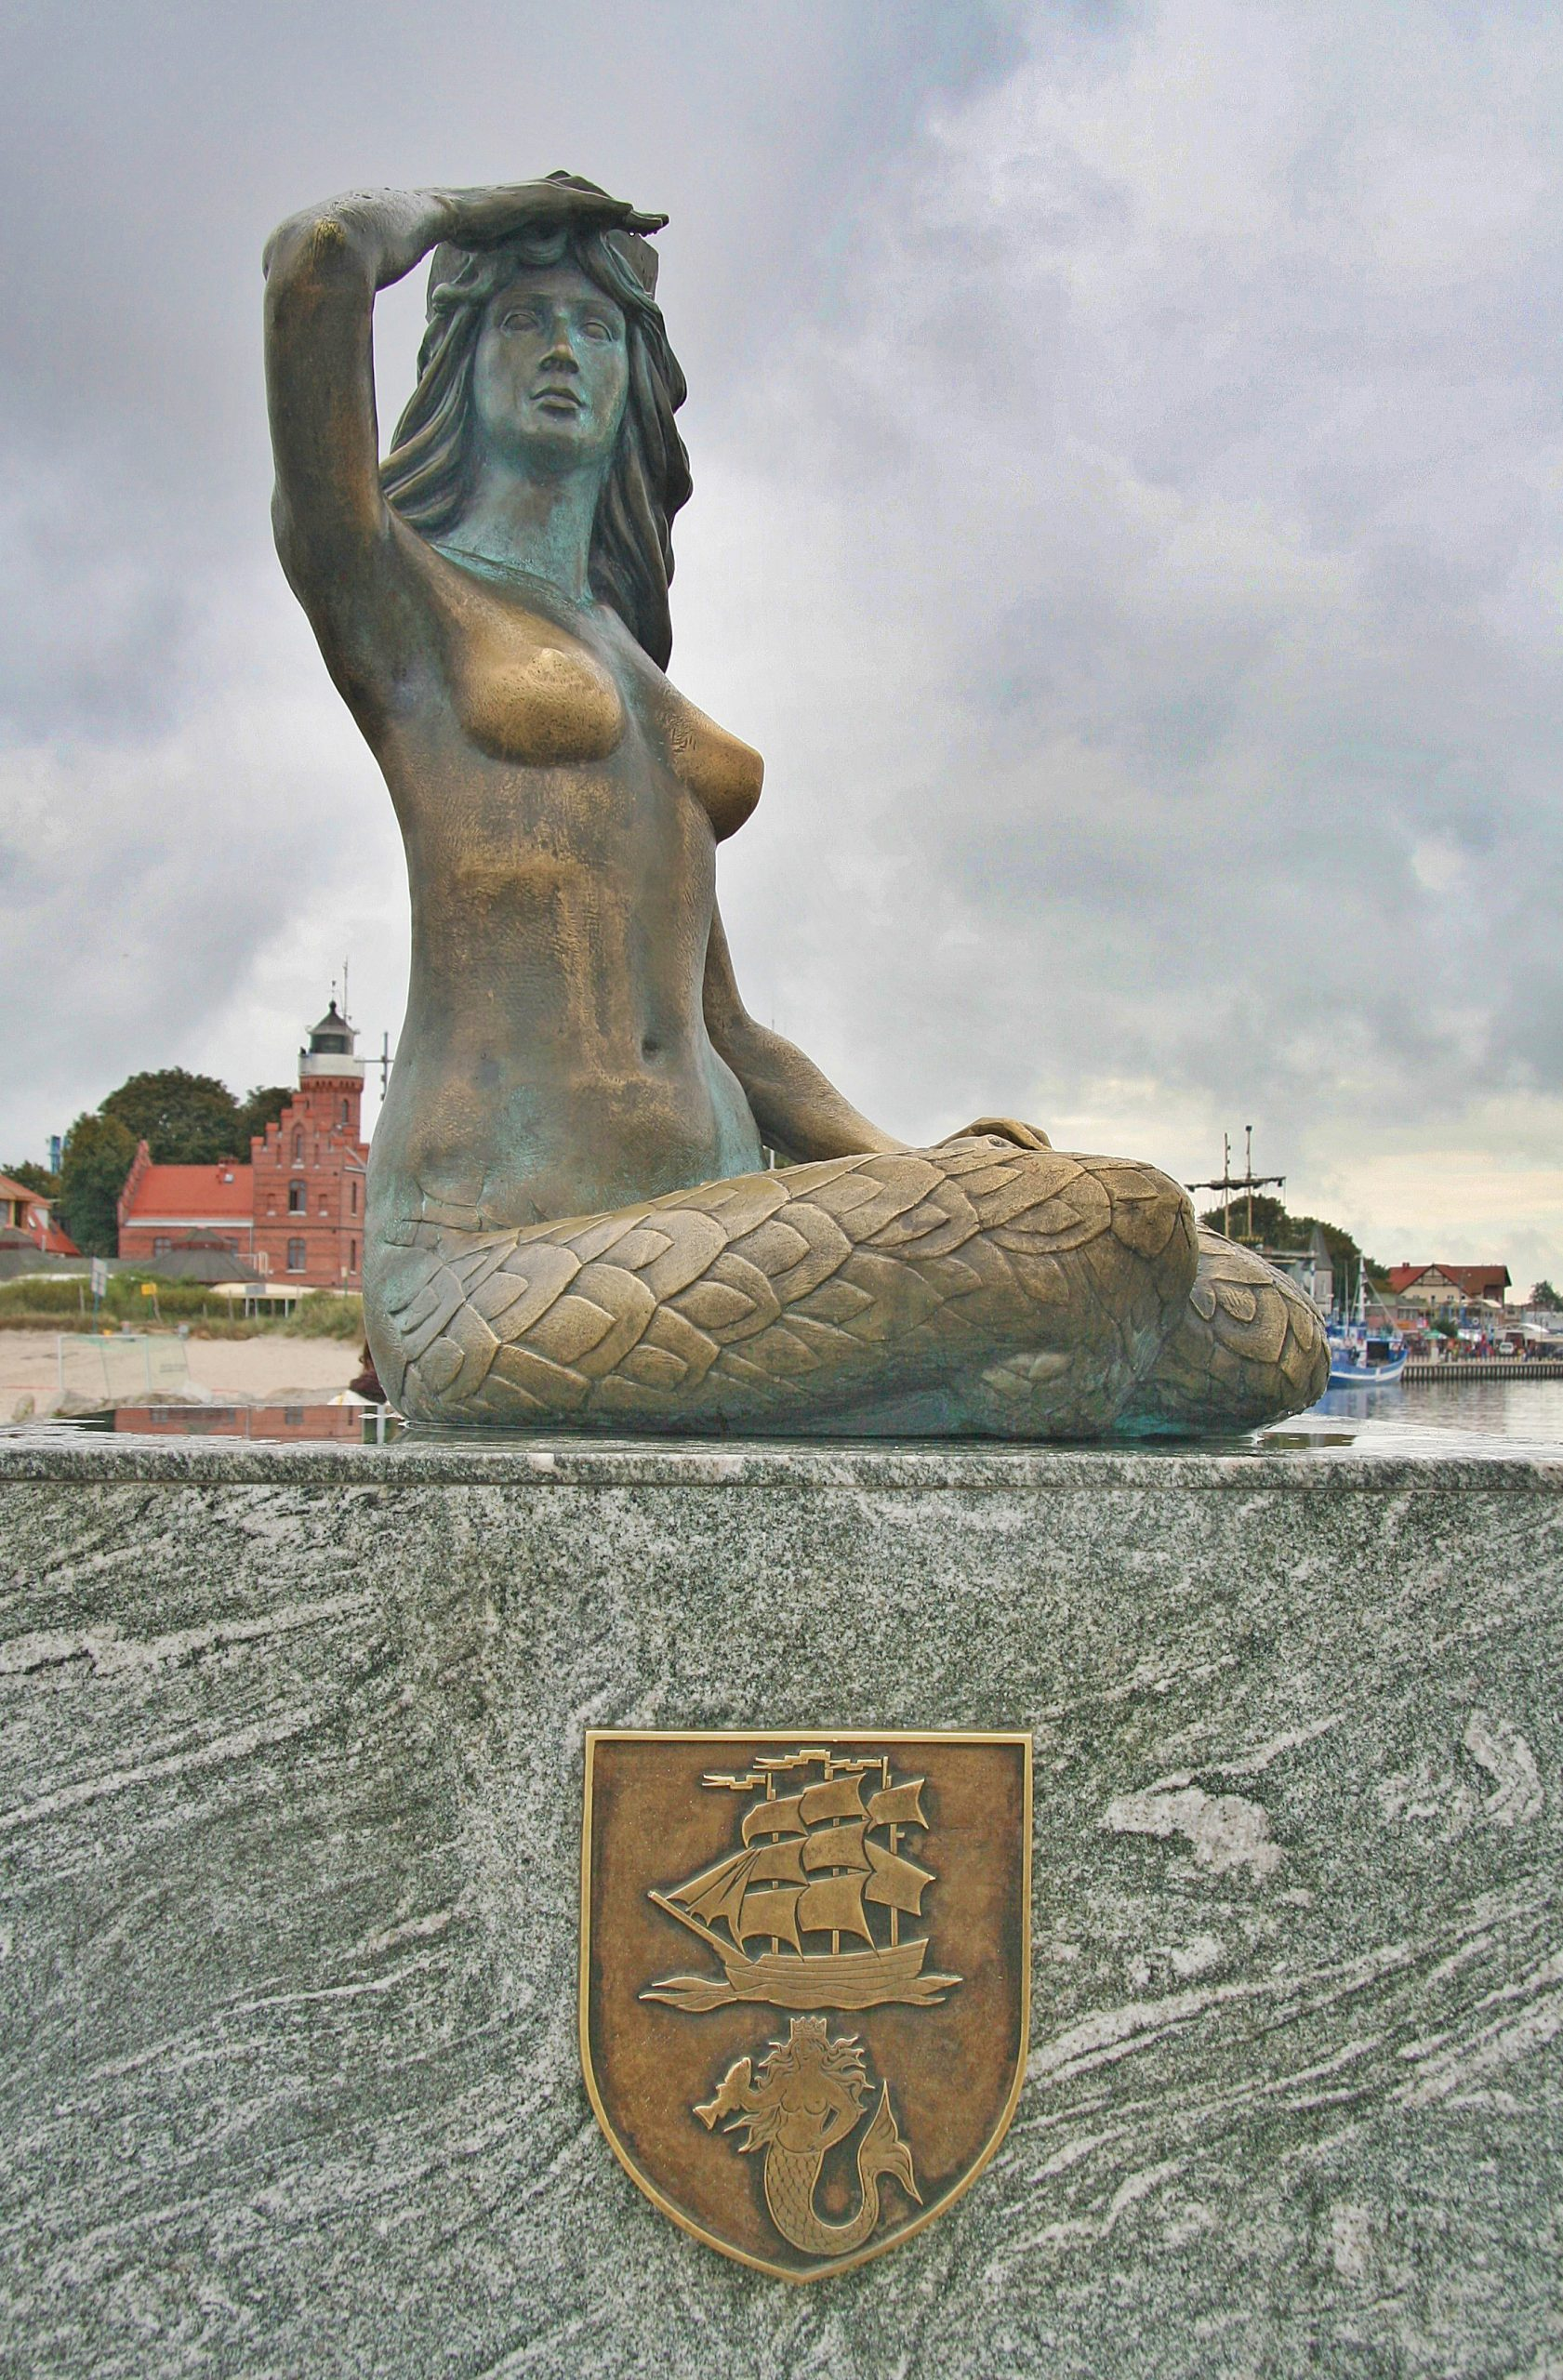 Ustka Mermaid